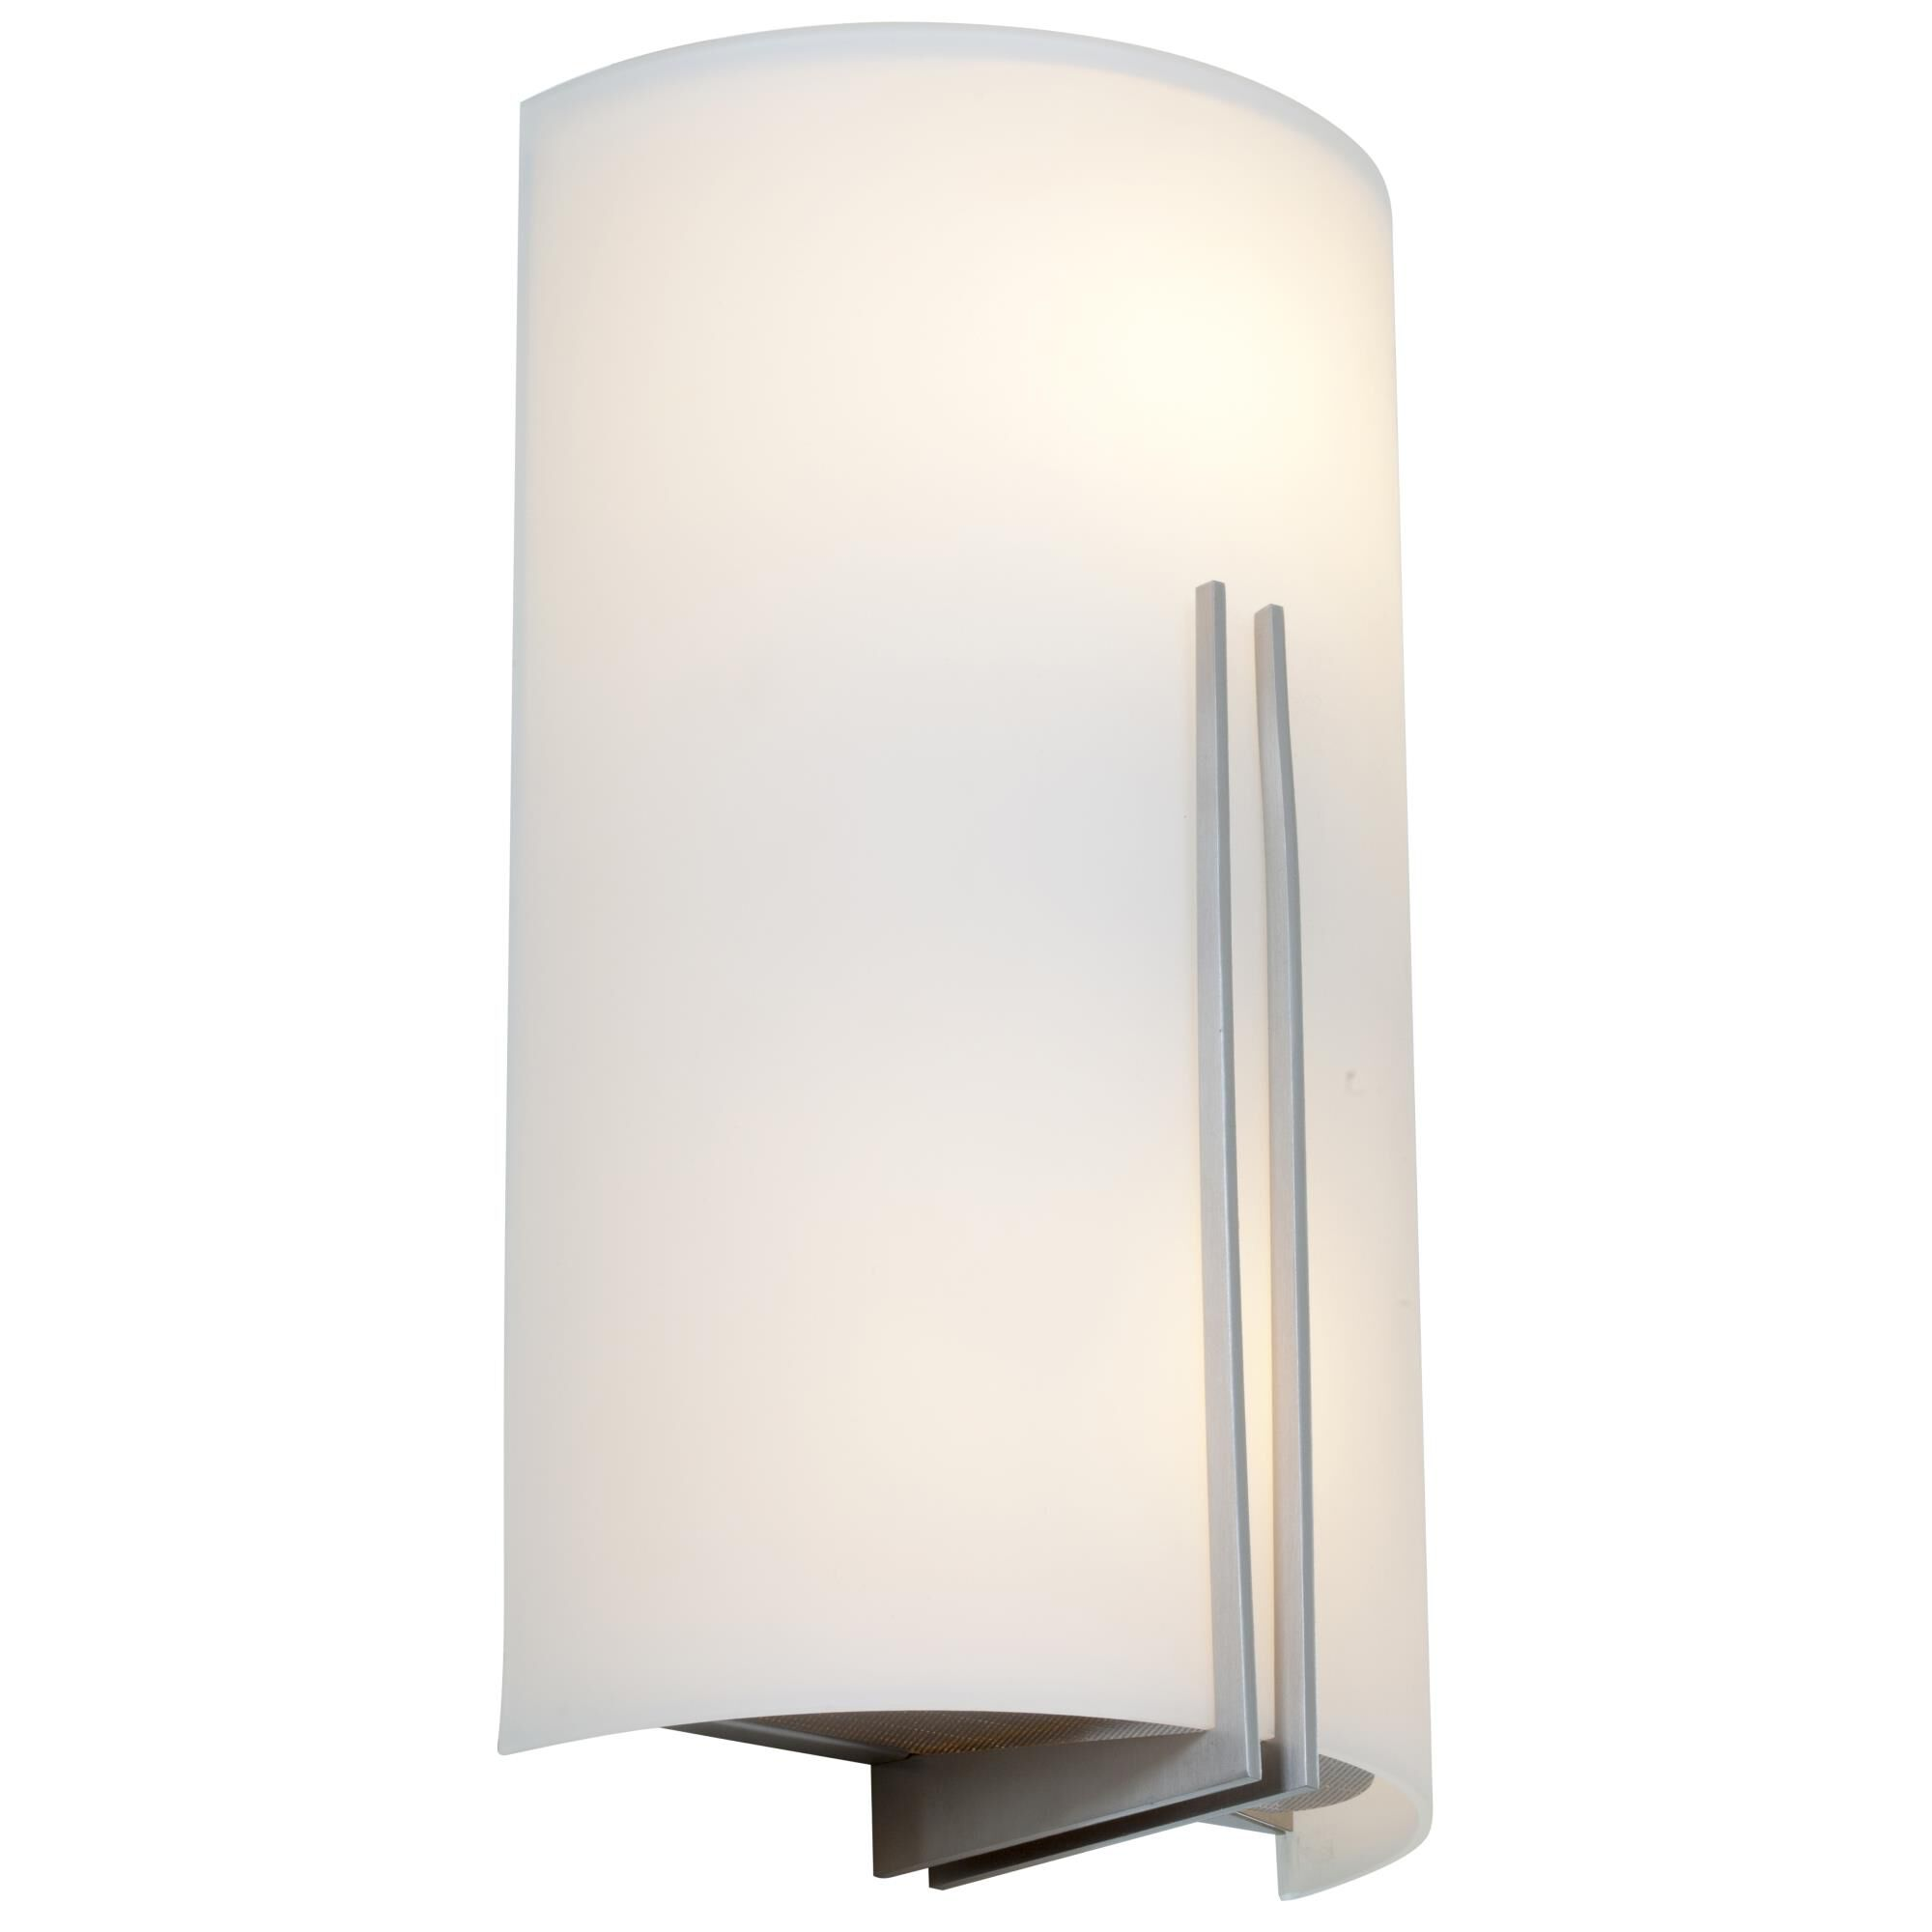 Access Lighting Prong 12 Inch Wall Sconce Prong 20446LEDD BSWHT Modern Contemporary